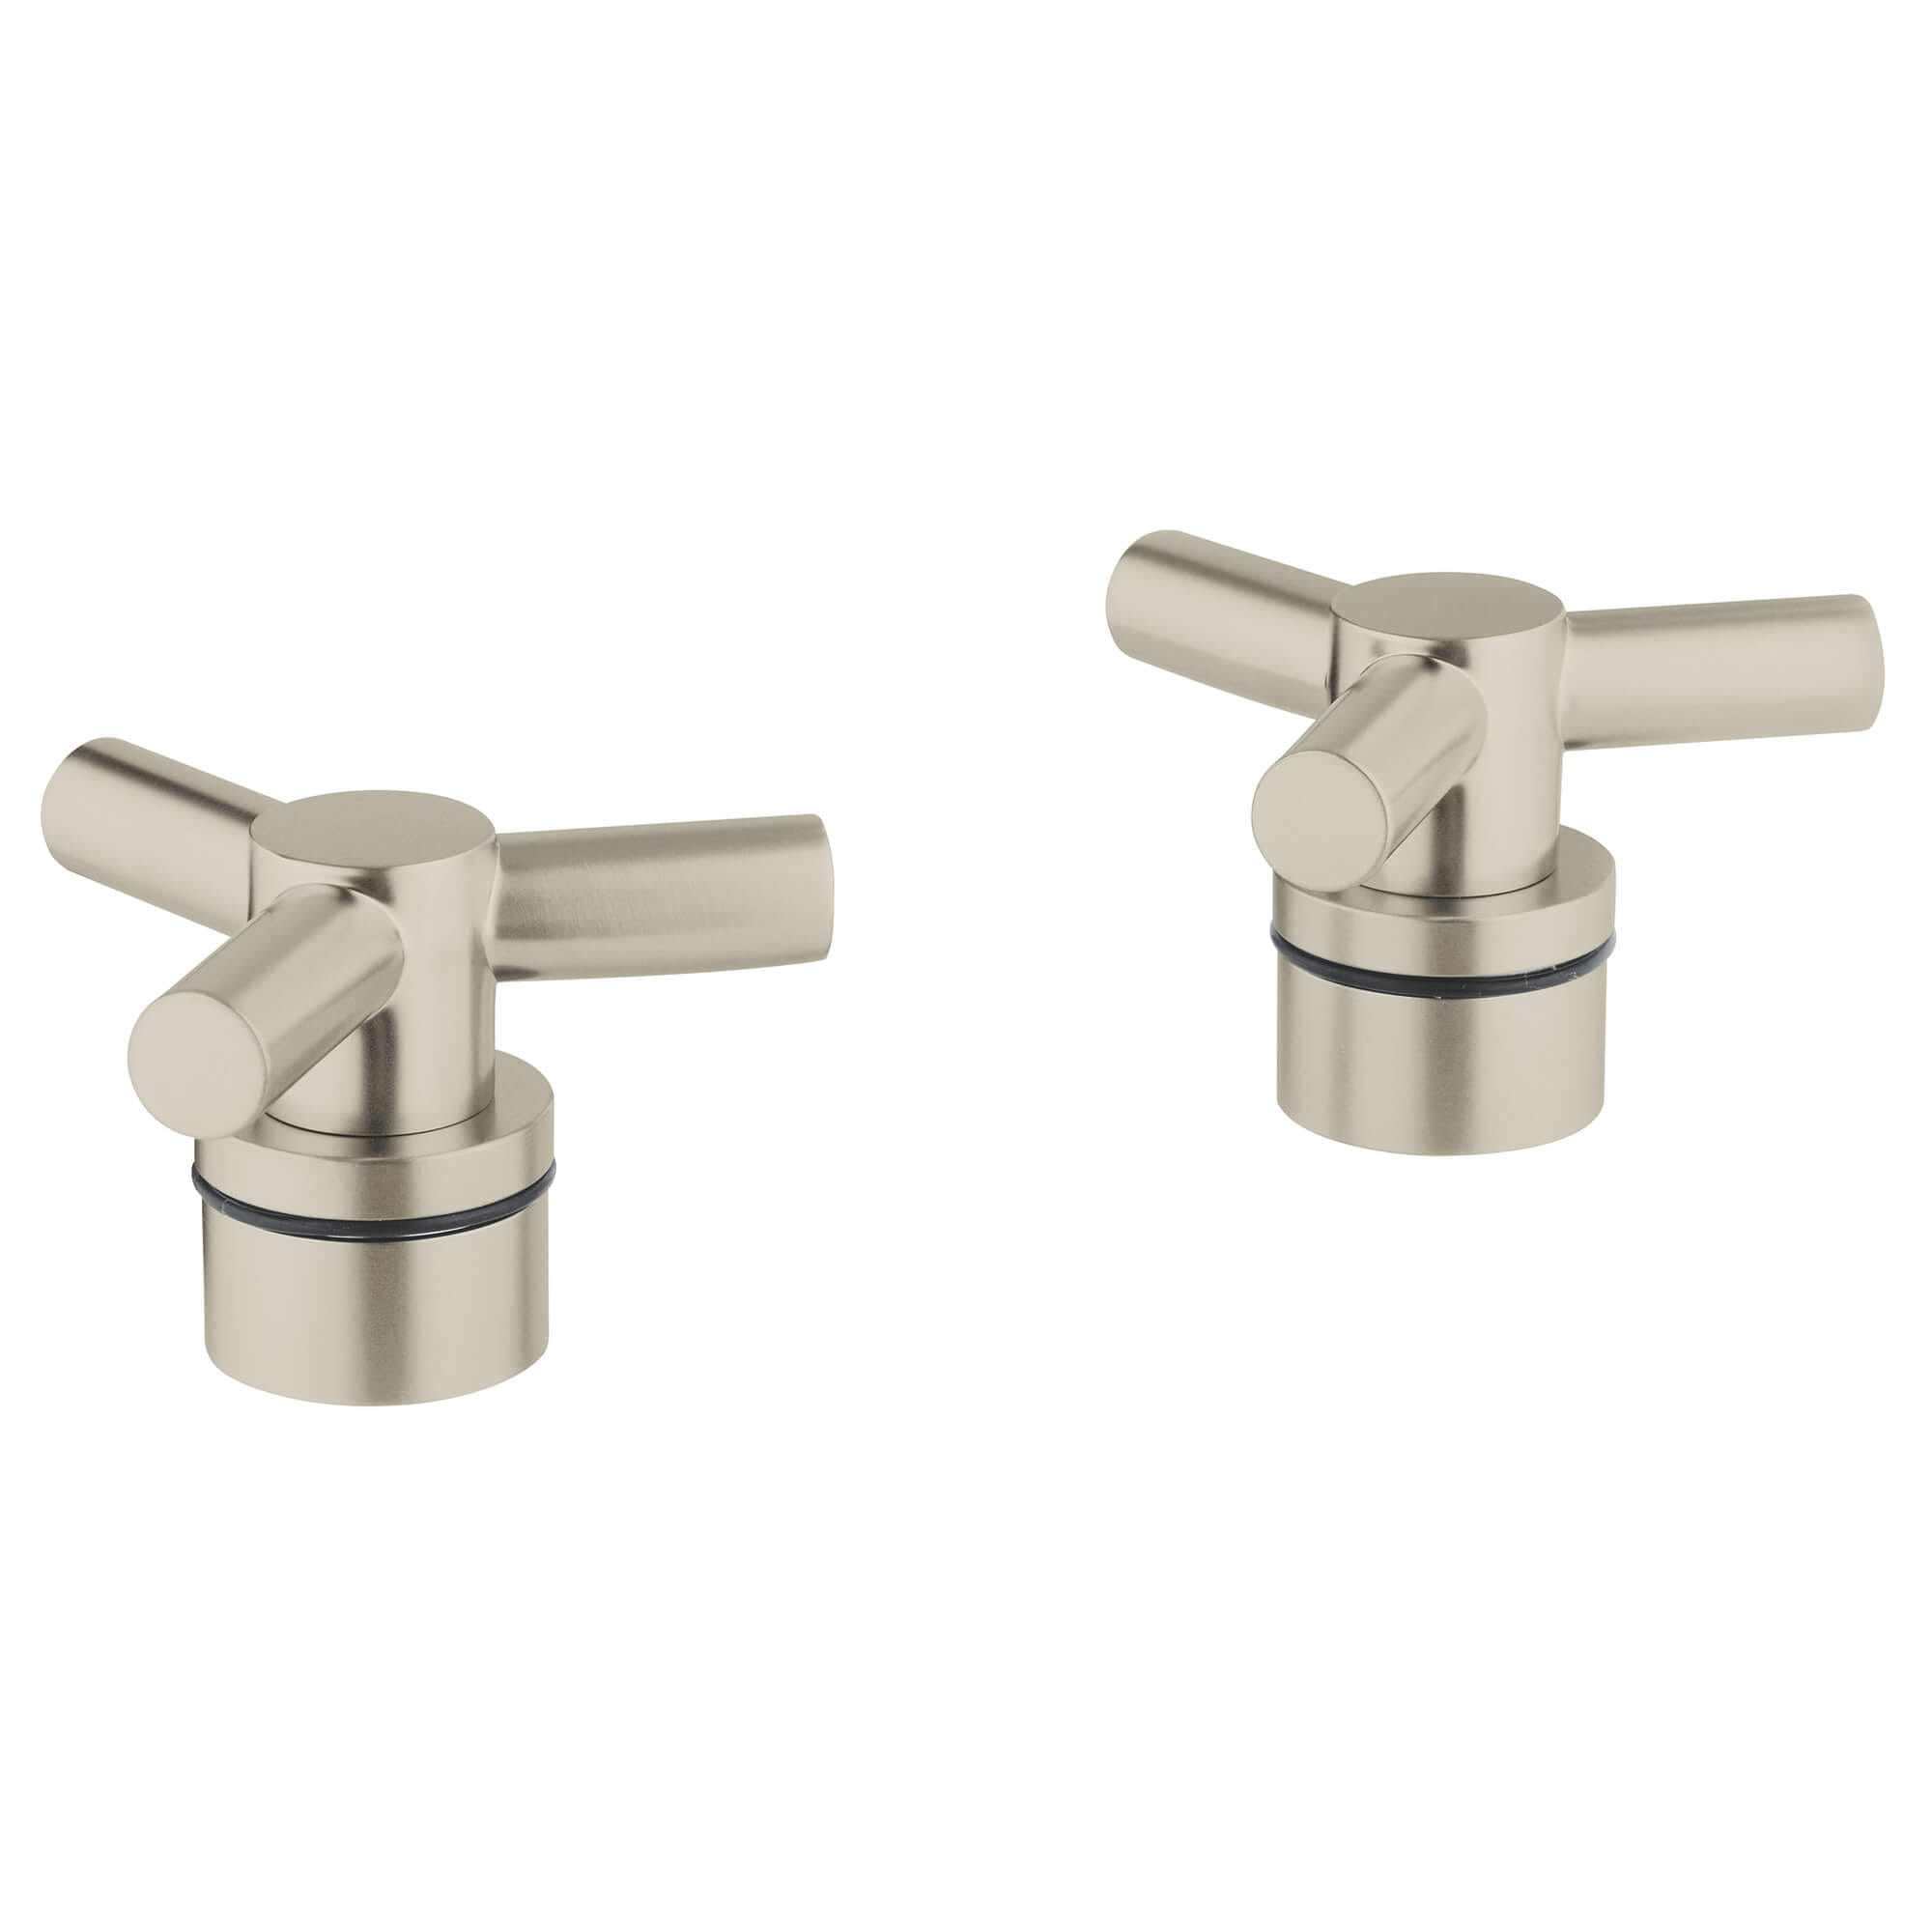 ATRIO Cross Handles GROHE BRUSHED NICKEL